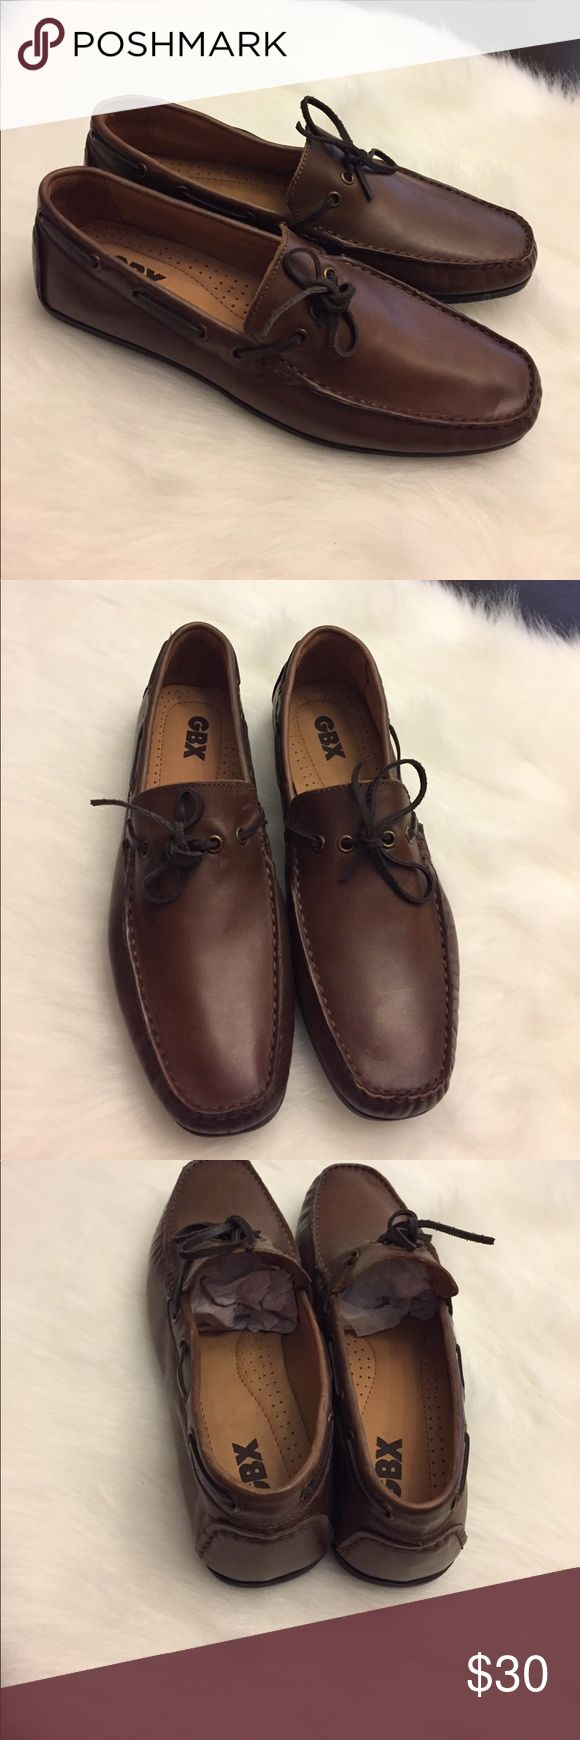 GBX Men's Casual Loafers Slip On Shoes Size 9.5 GBX Men's Shoes  style: Henley  size: US 9.5  color: Brown These are brand new without tags and box. Men's size 9.5. They are new but have a few scratches which you can see in the pictures but aren't that noticeable. Stylish shoes. Please check out my other listings! Thanks! GBX Shoes Loafers & Slip-Ons